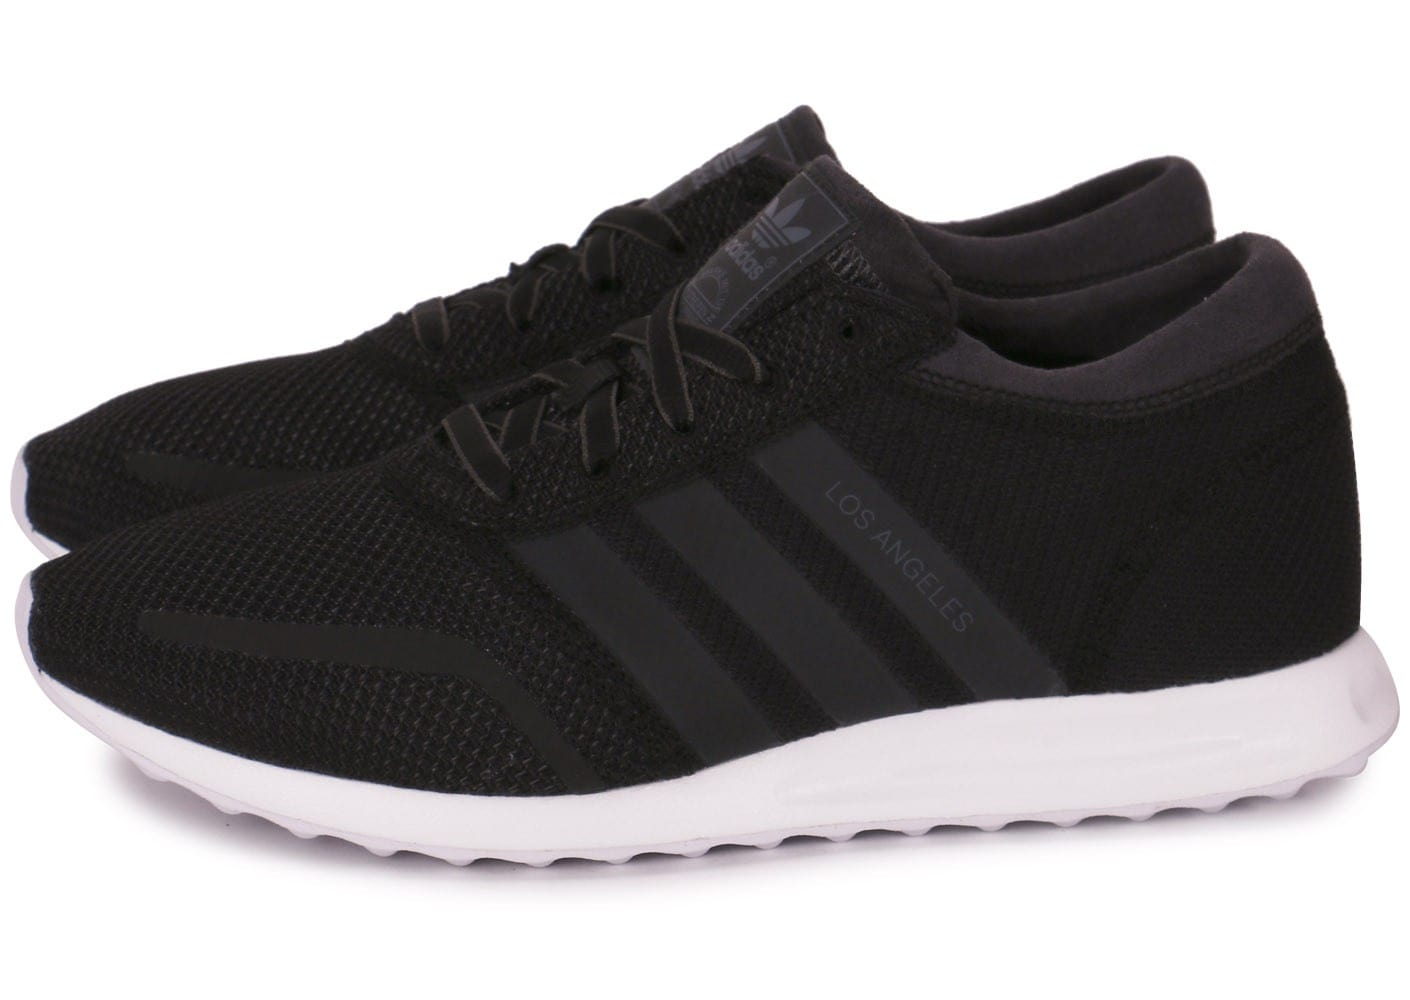 Homme Chaussures Chausport Angeles Noire Adidas Los Baskets W9IYEHD2